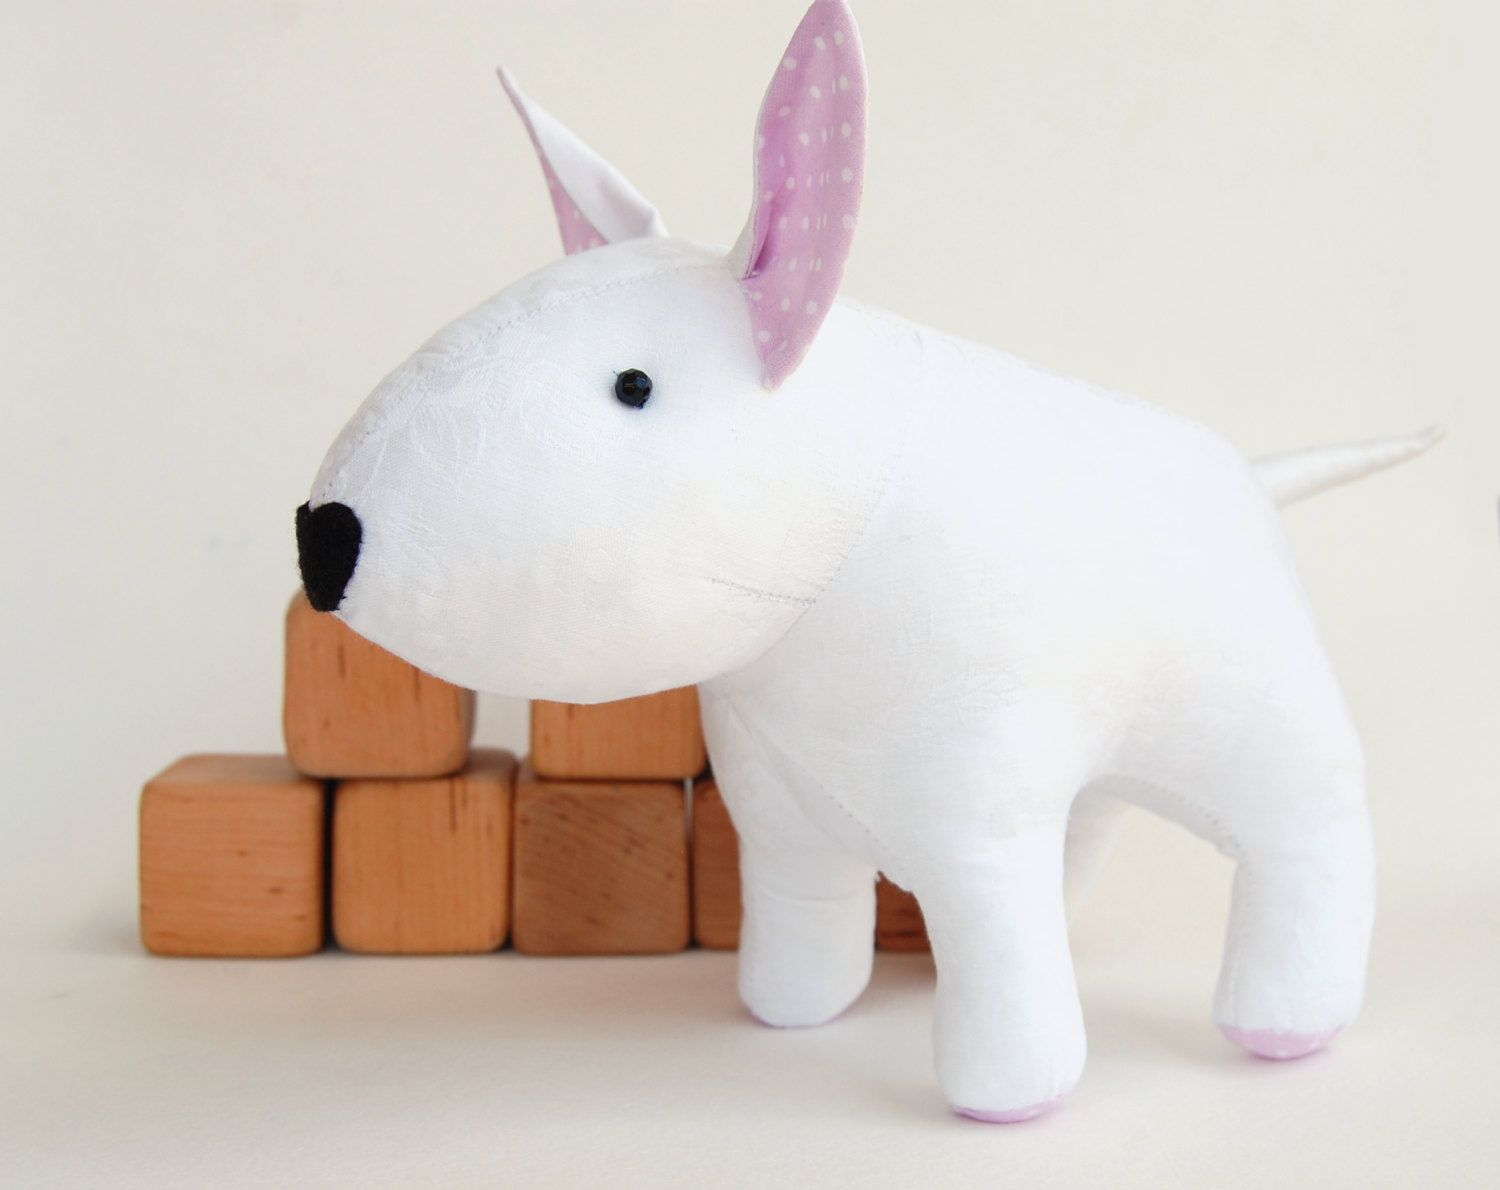 Dog pattern sewing toy pattern bull terrier toy sewing pdf sewing pattern stuffed dog bullterrier toy for kids pdf tutorial diy by toyspatternclub on jeuxipadfo Images